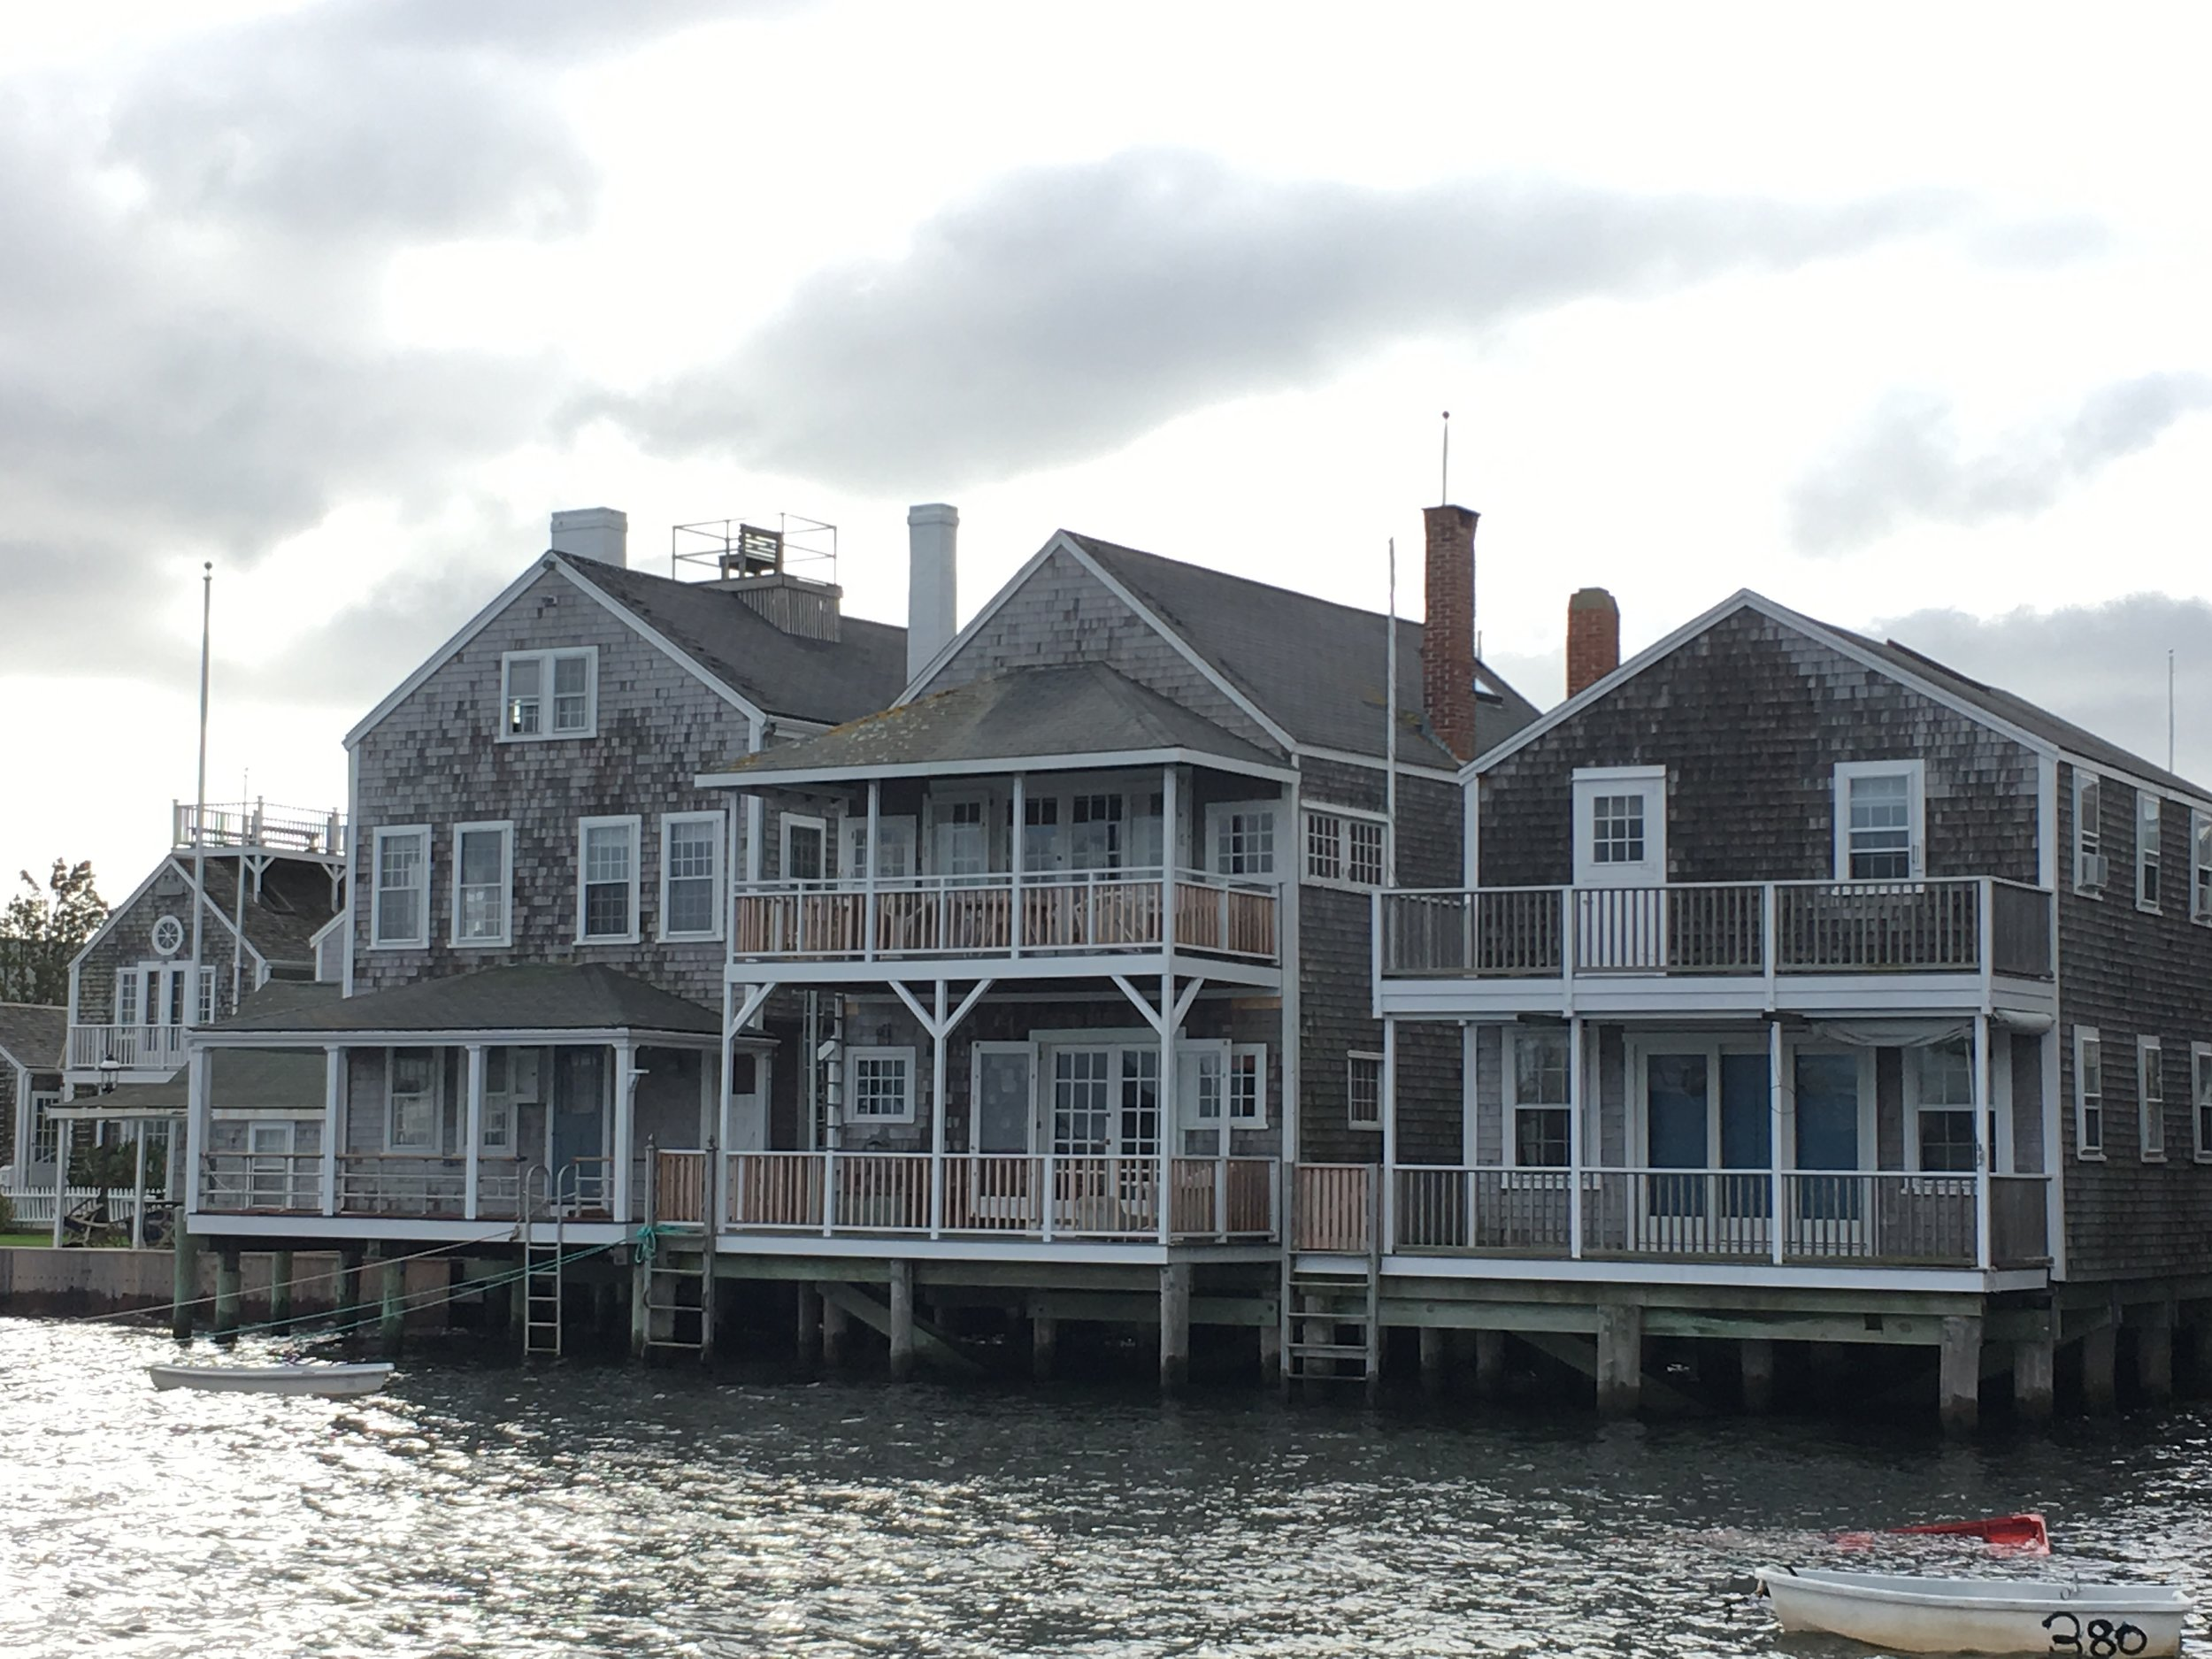 Nantucket Houses on the Water